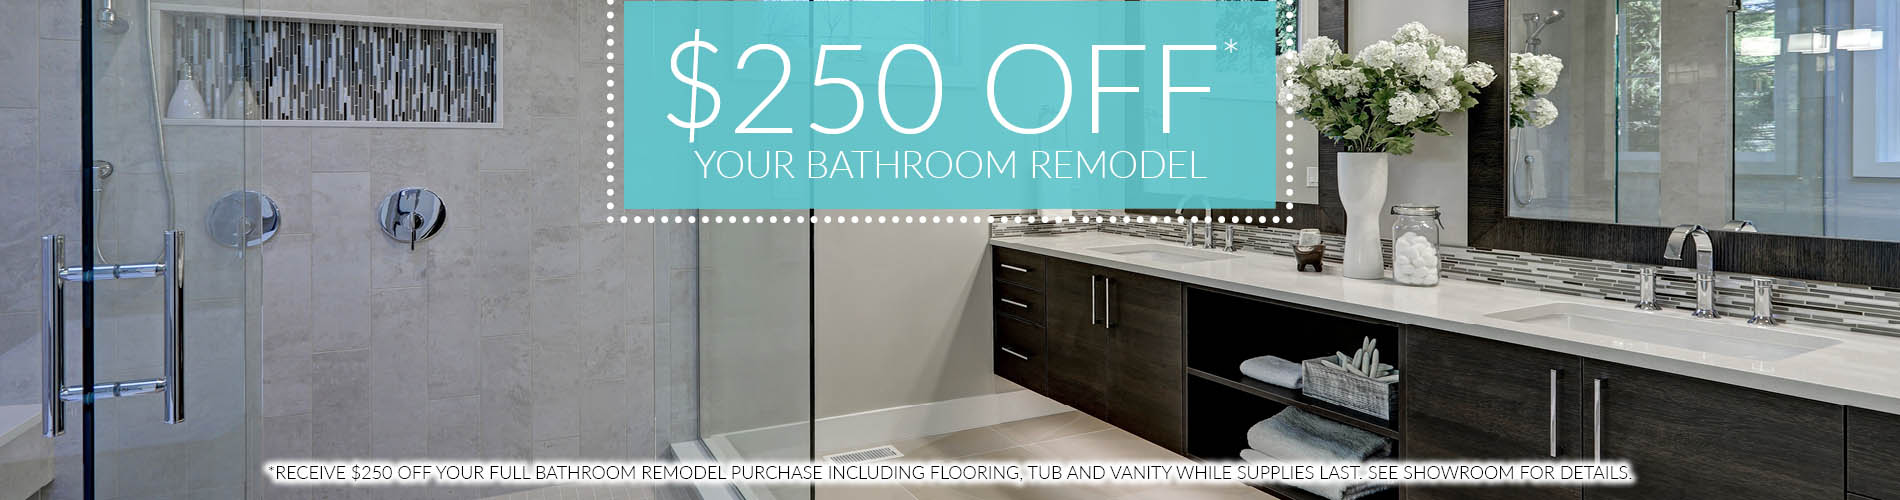 $250 OFF Your Bathroom Remodel! Kitchen & Bathroom Remodeling ...